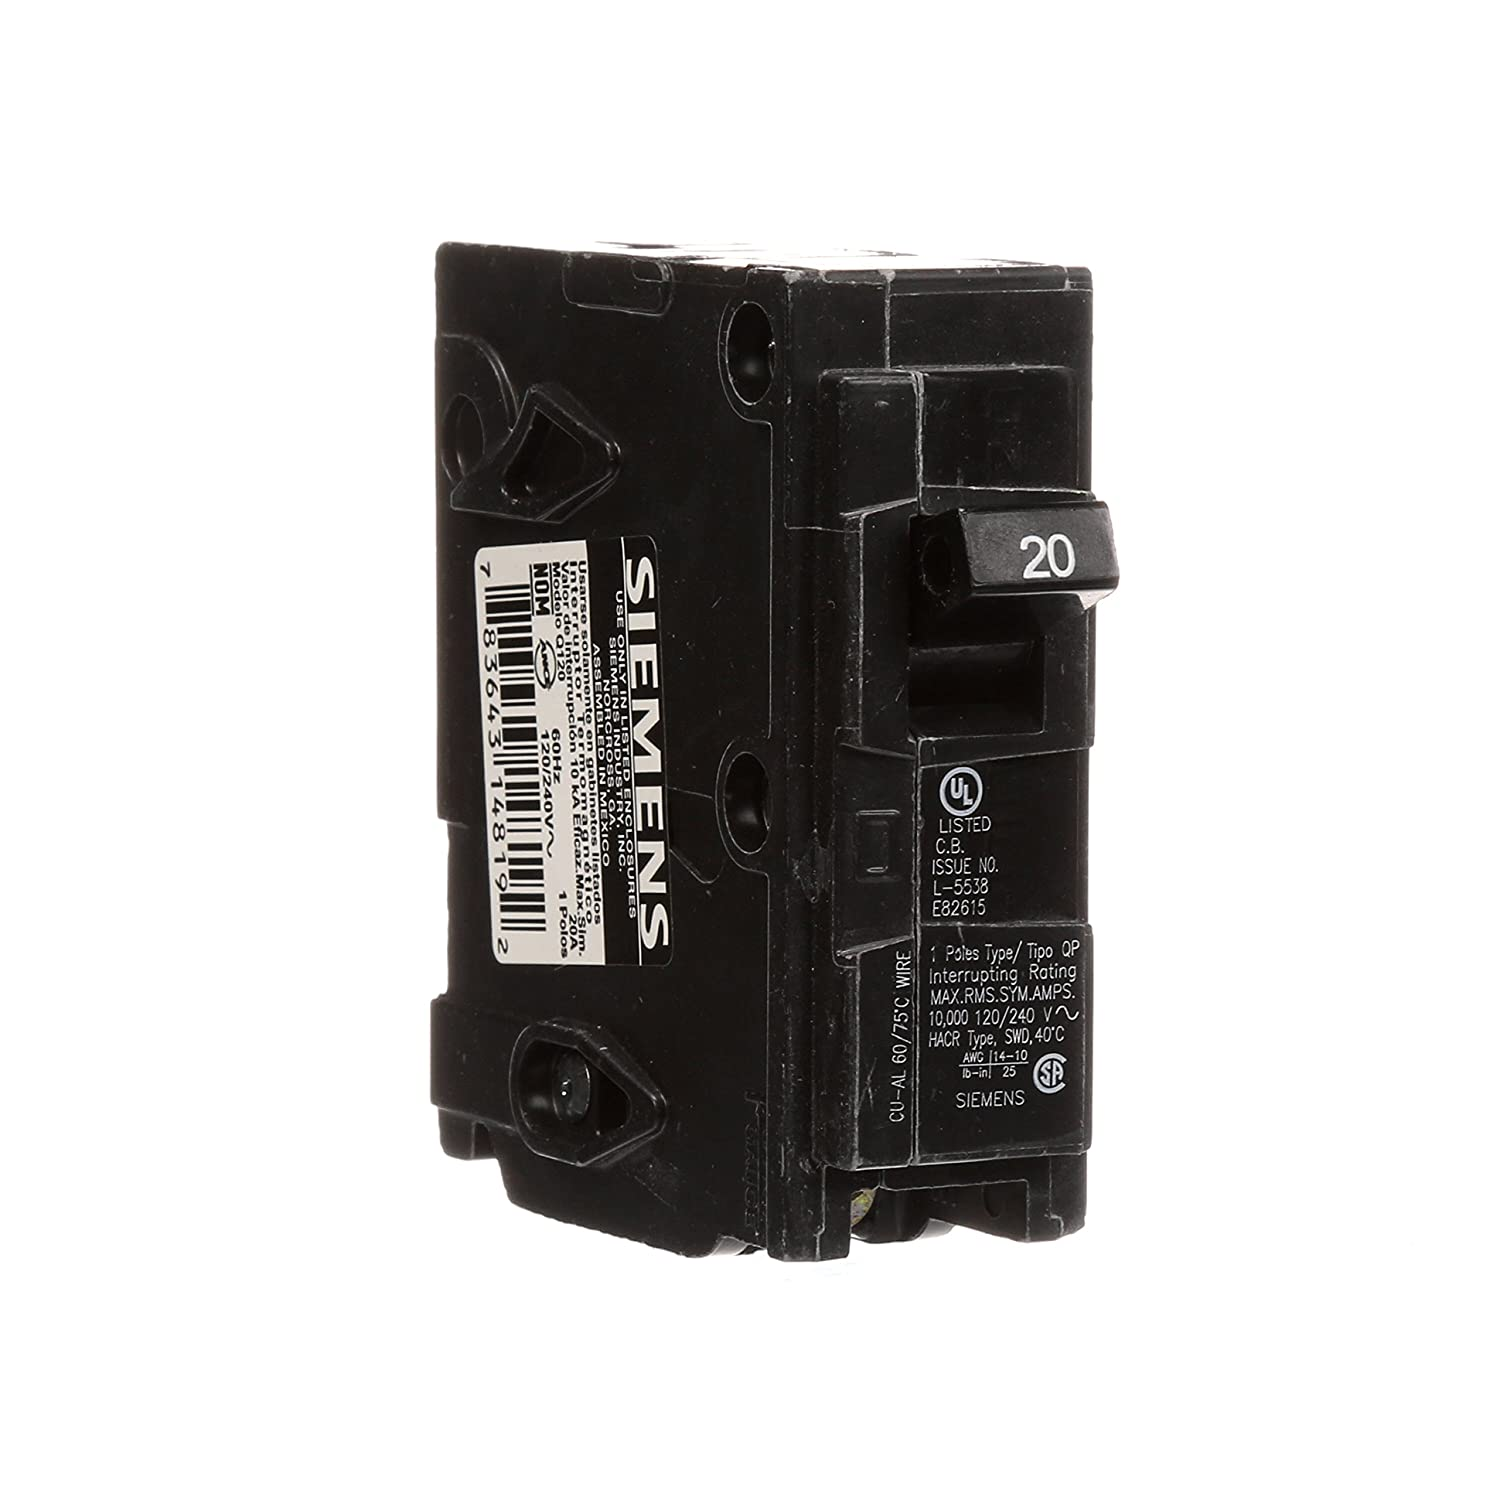 Q115 15 Amp Single Pole Type Qp Circuit Breaker In Case Of Burning On The Main Board Check That Problem